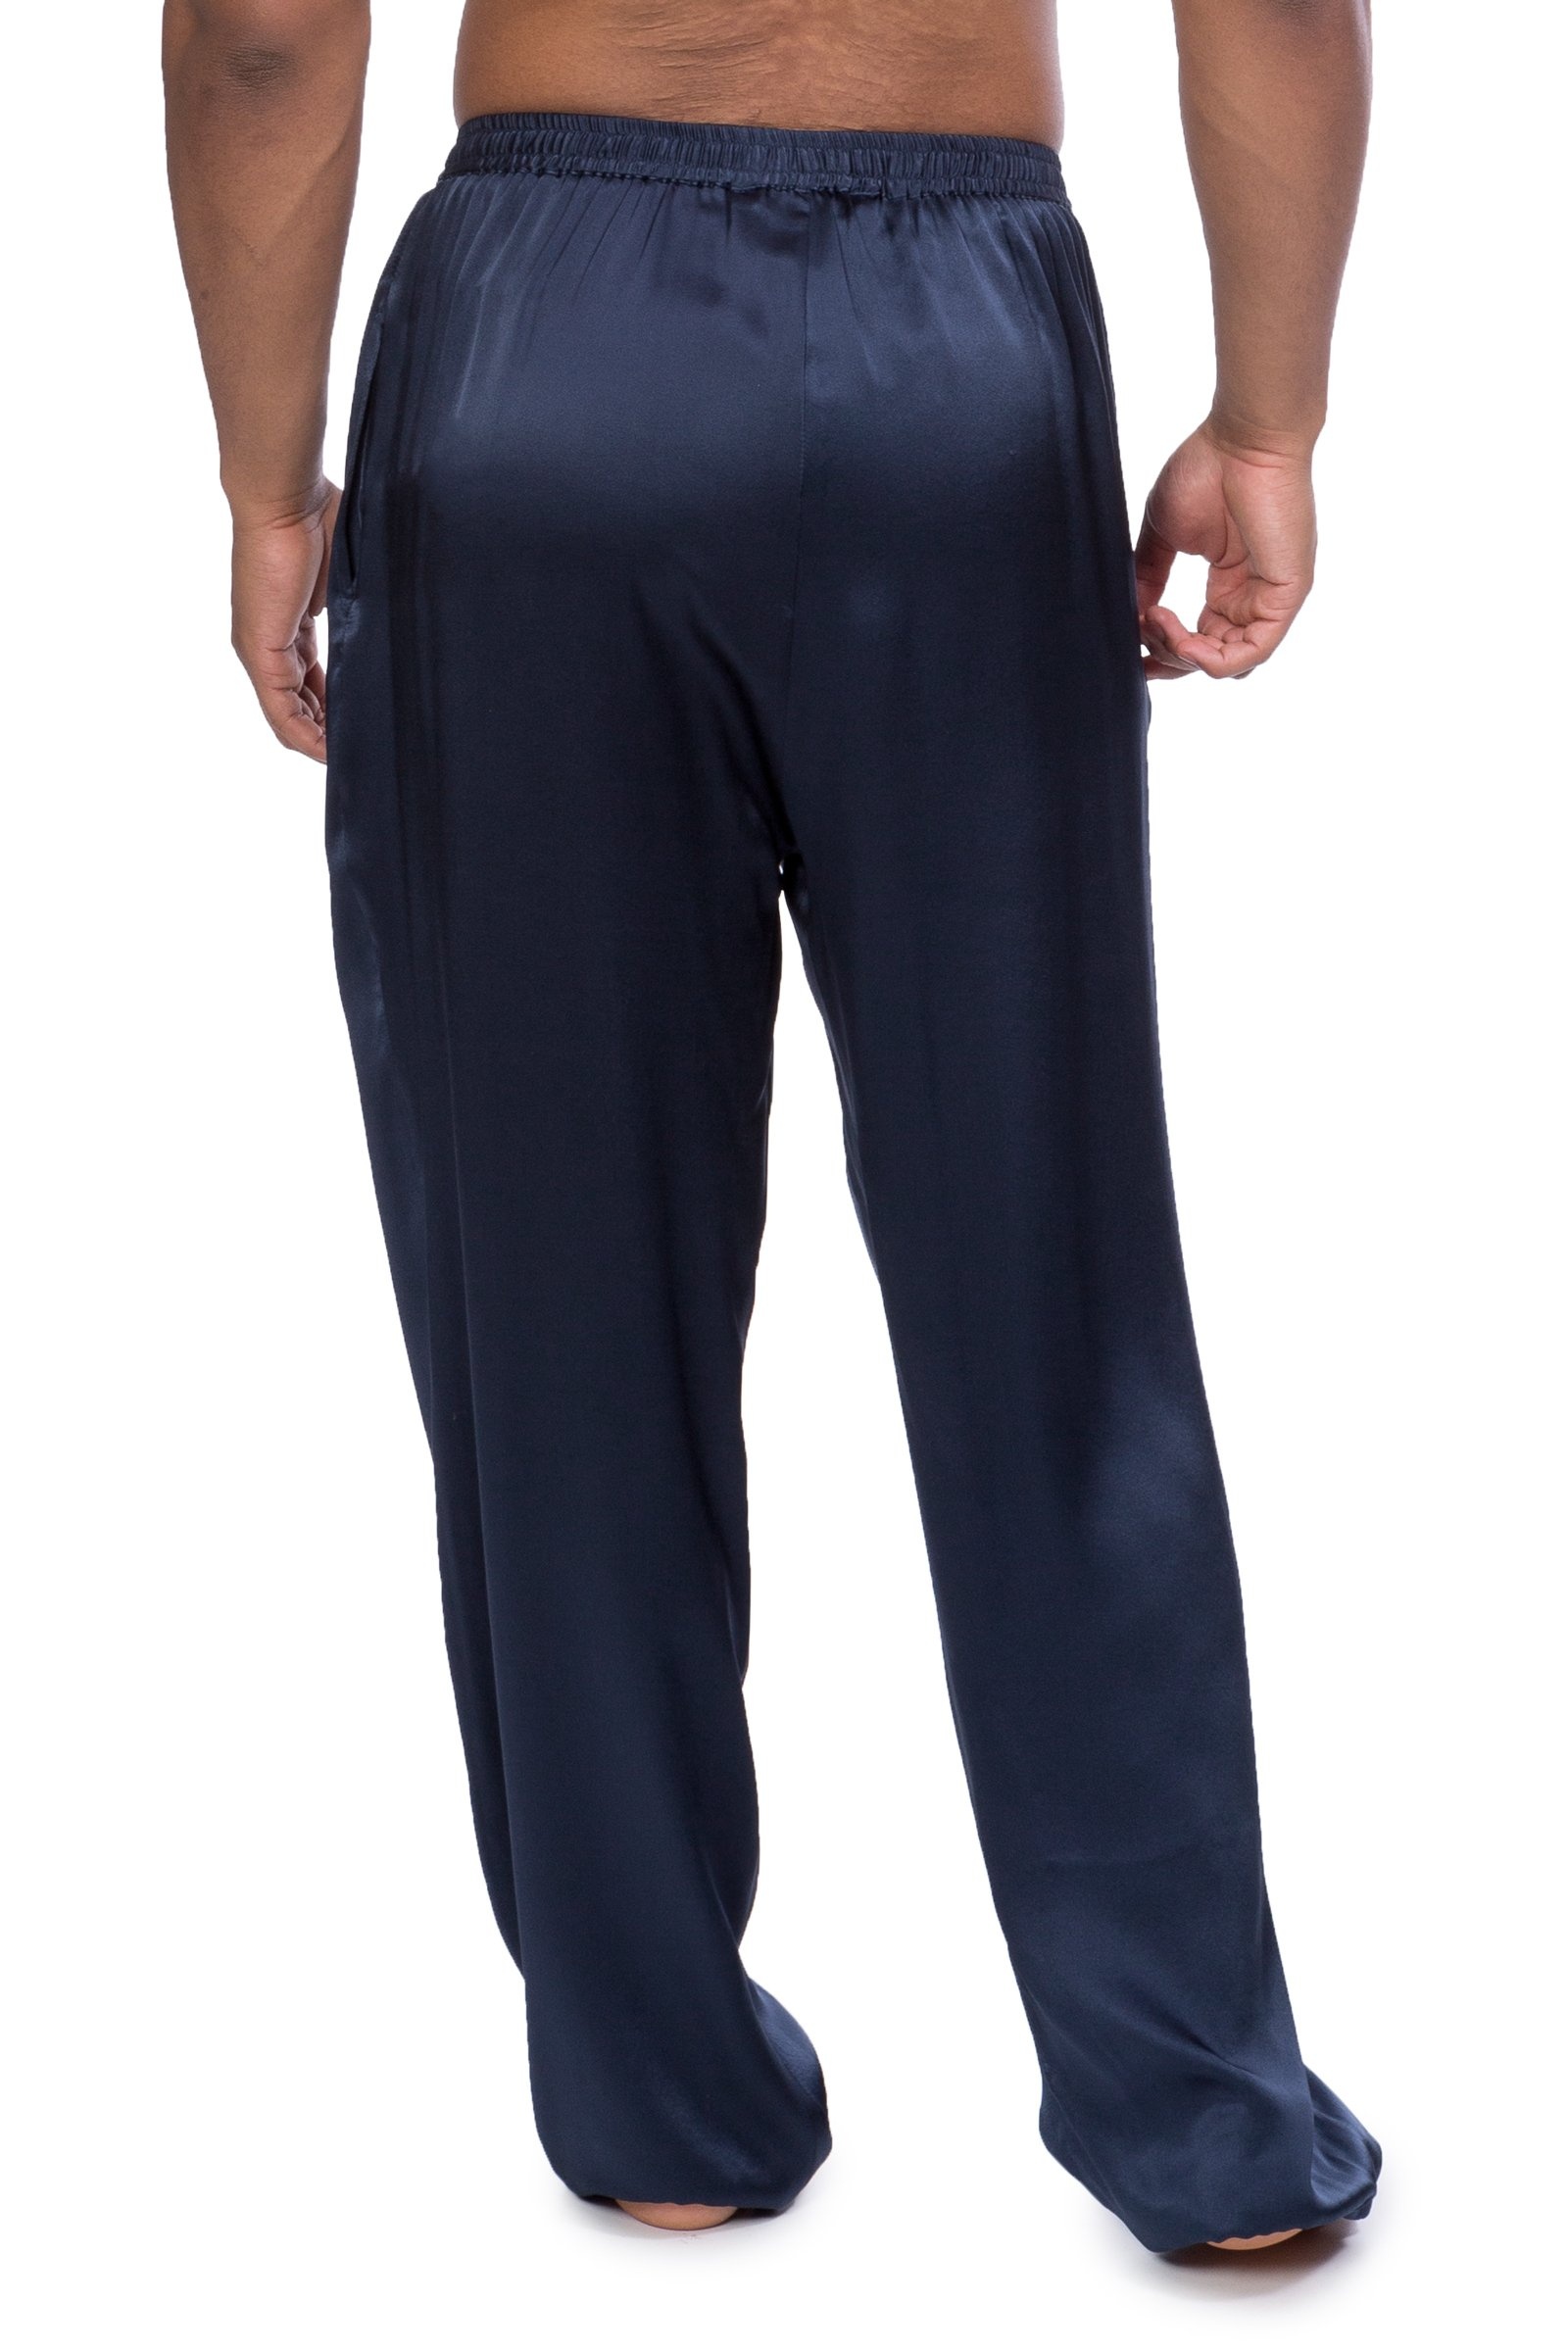 Men's Luxury Silk Pajama Pants (Hiruko, Midnight Blue, X-Large) Unique Valentine's Day Gifts for Him MS0201-MID-XL by TexereSilk (Image #3)